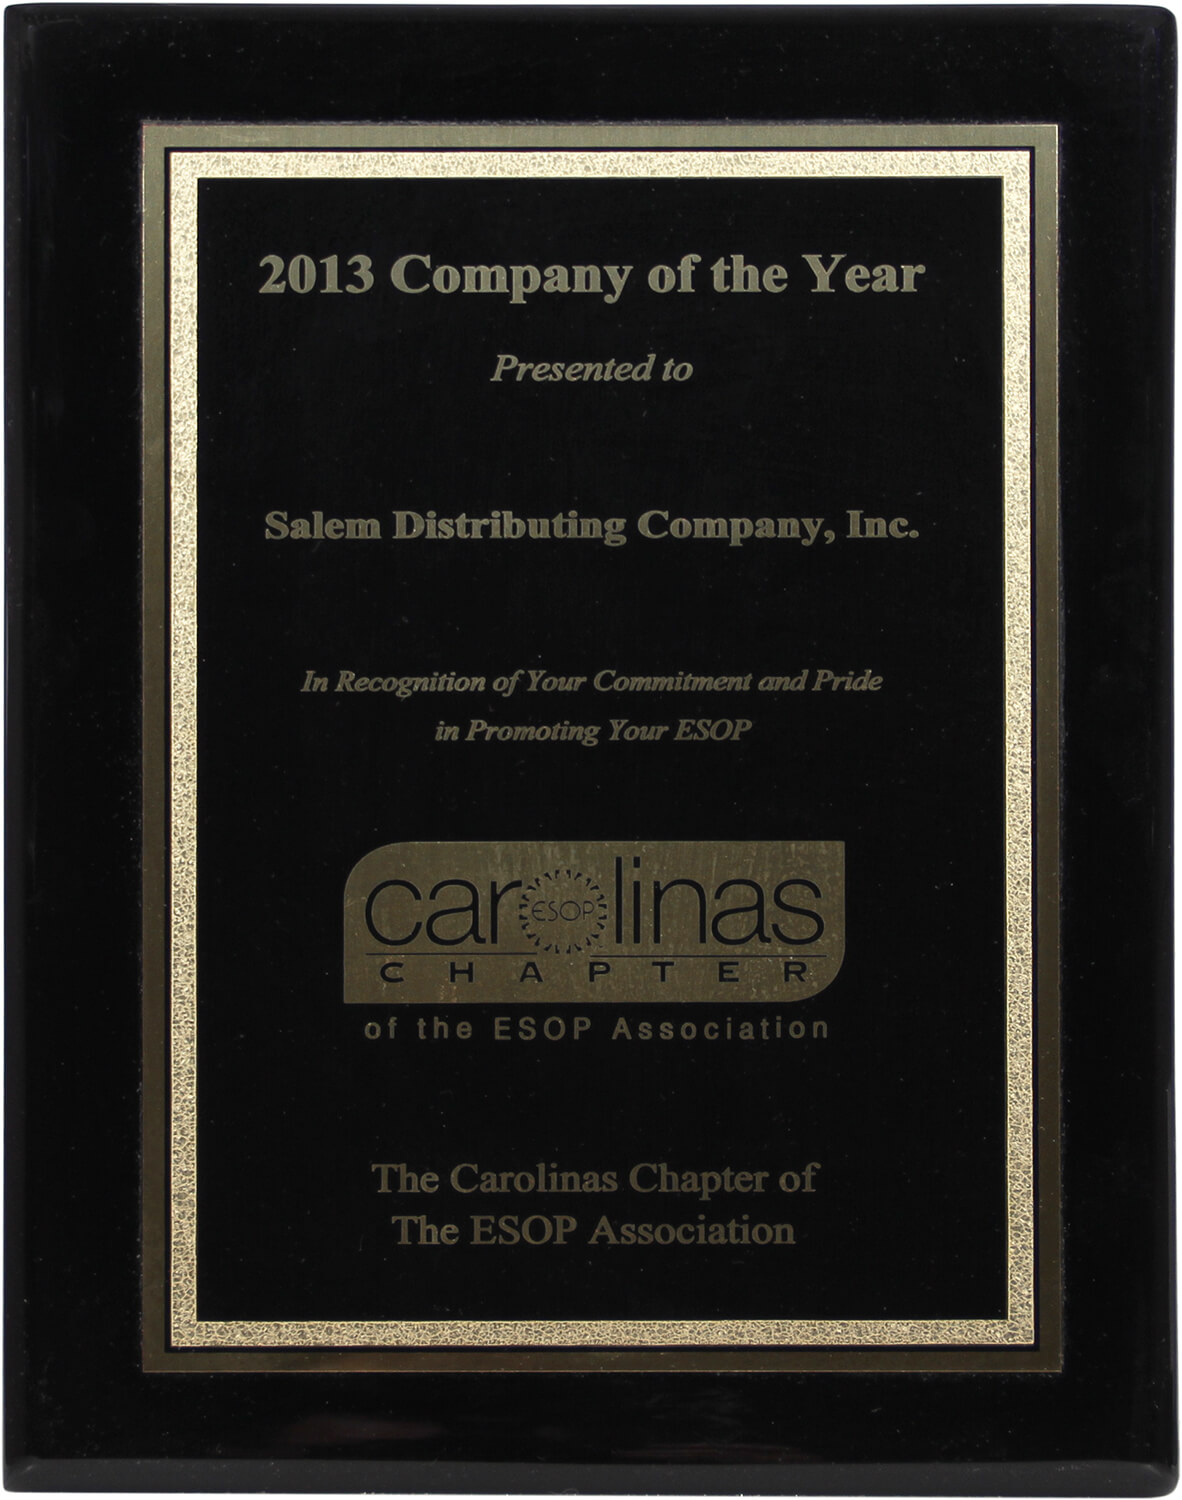 2013 Company of the year